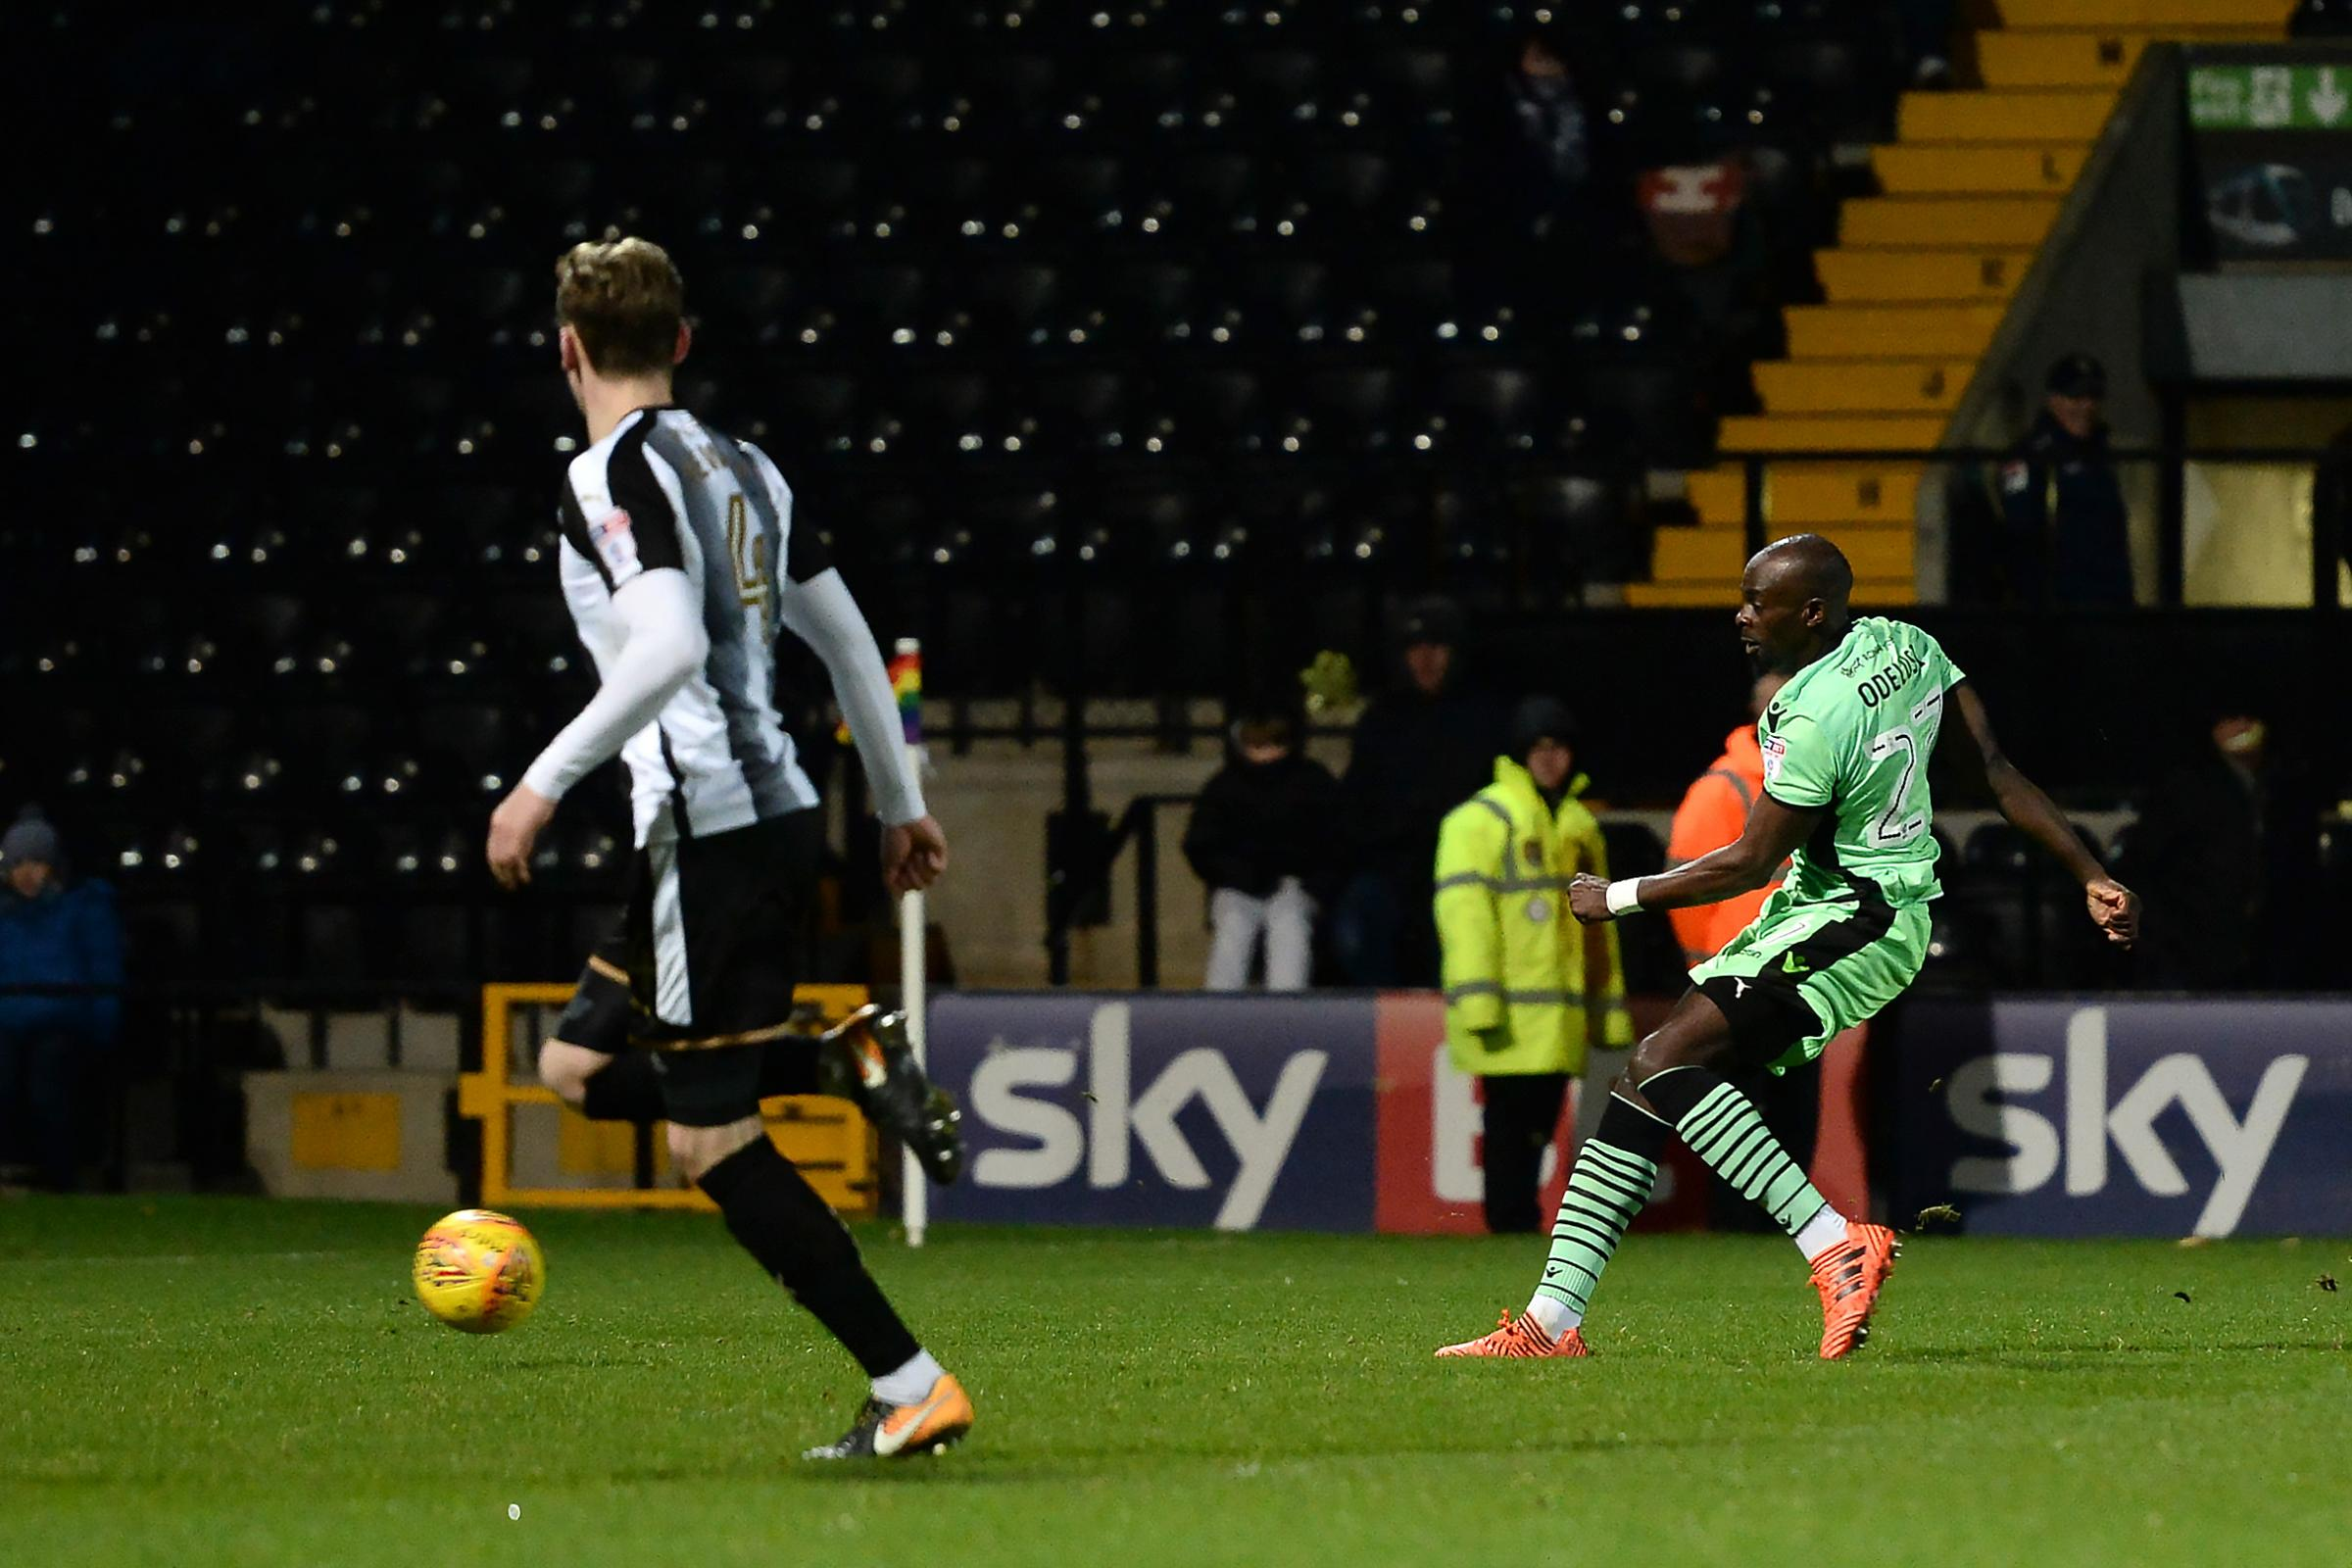 Memorable moment - Sanmi Odelusi scores his only goal for Colchester United in their 2-1 defeat at Notts County Picture: RICHARD BLAXALL